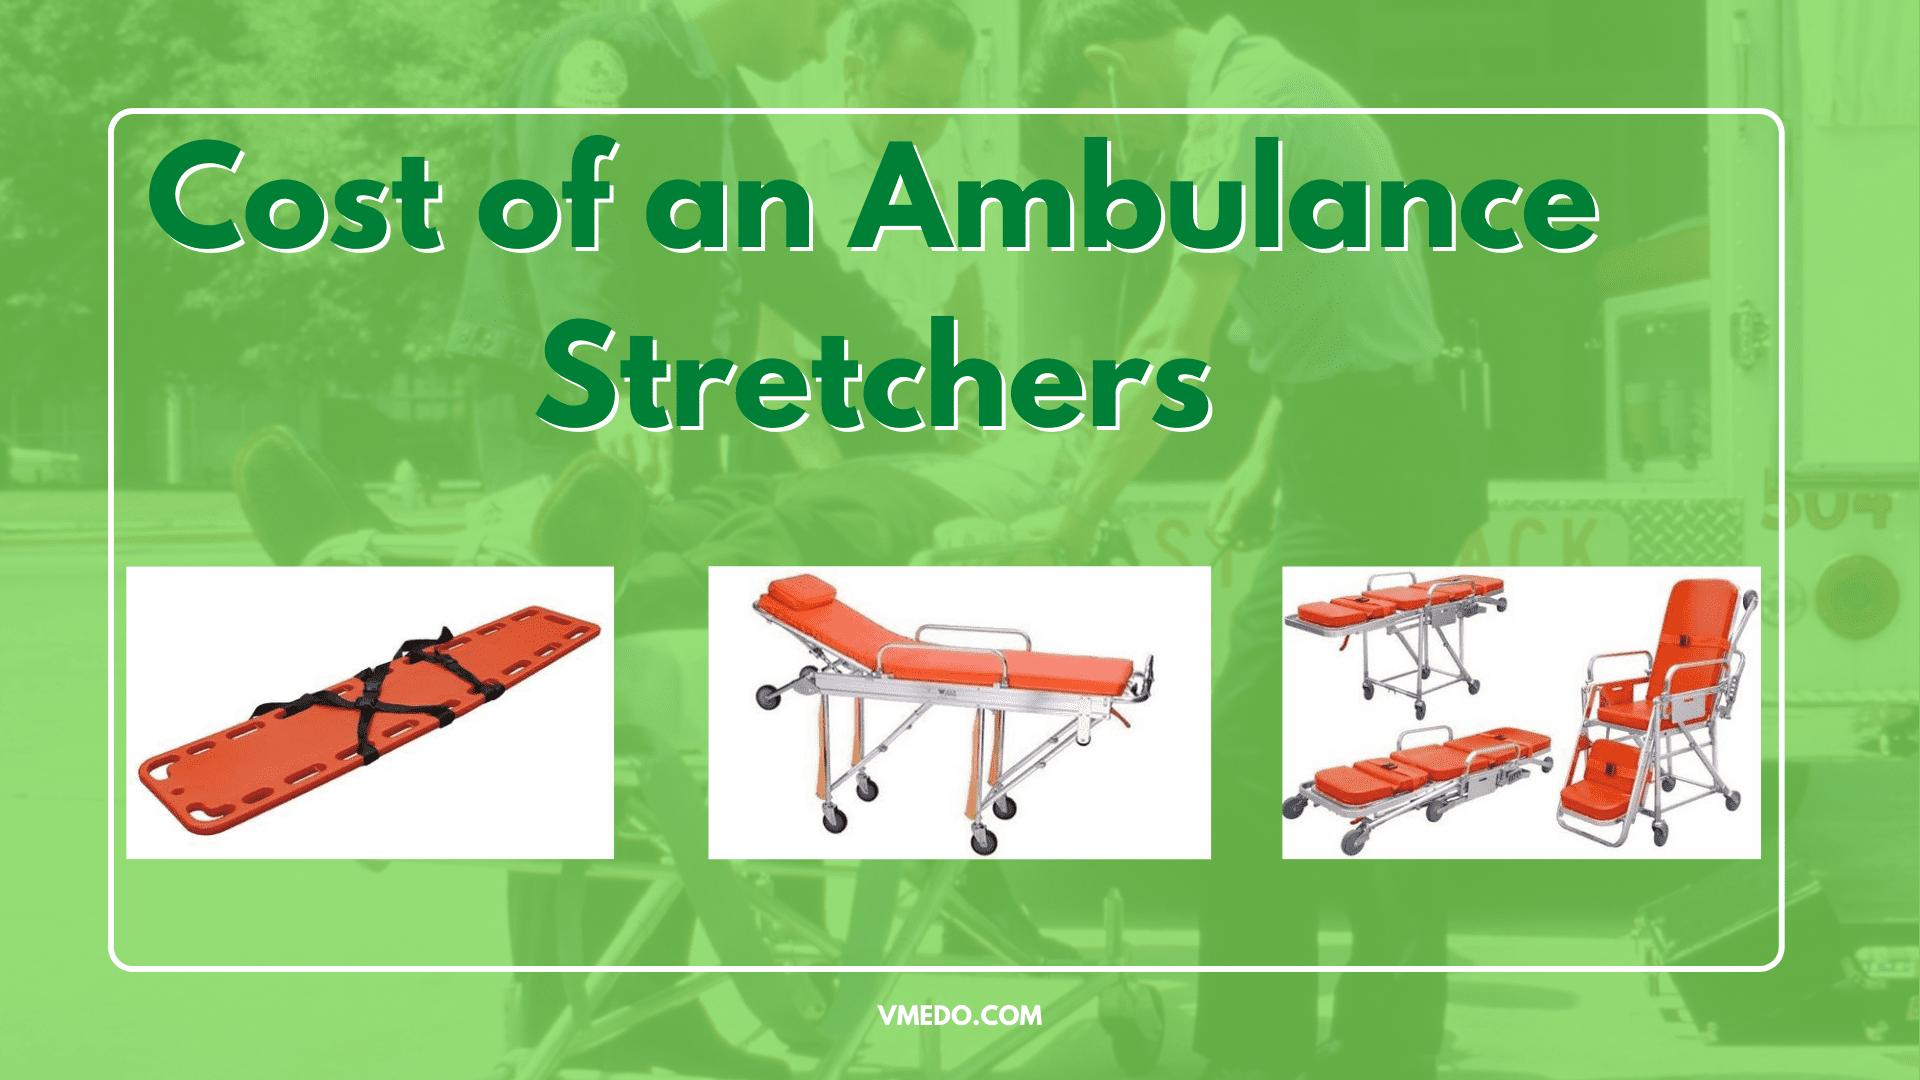 Cost of an Ambulance Stretchers